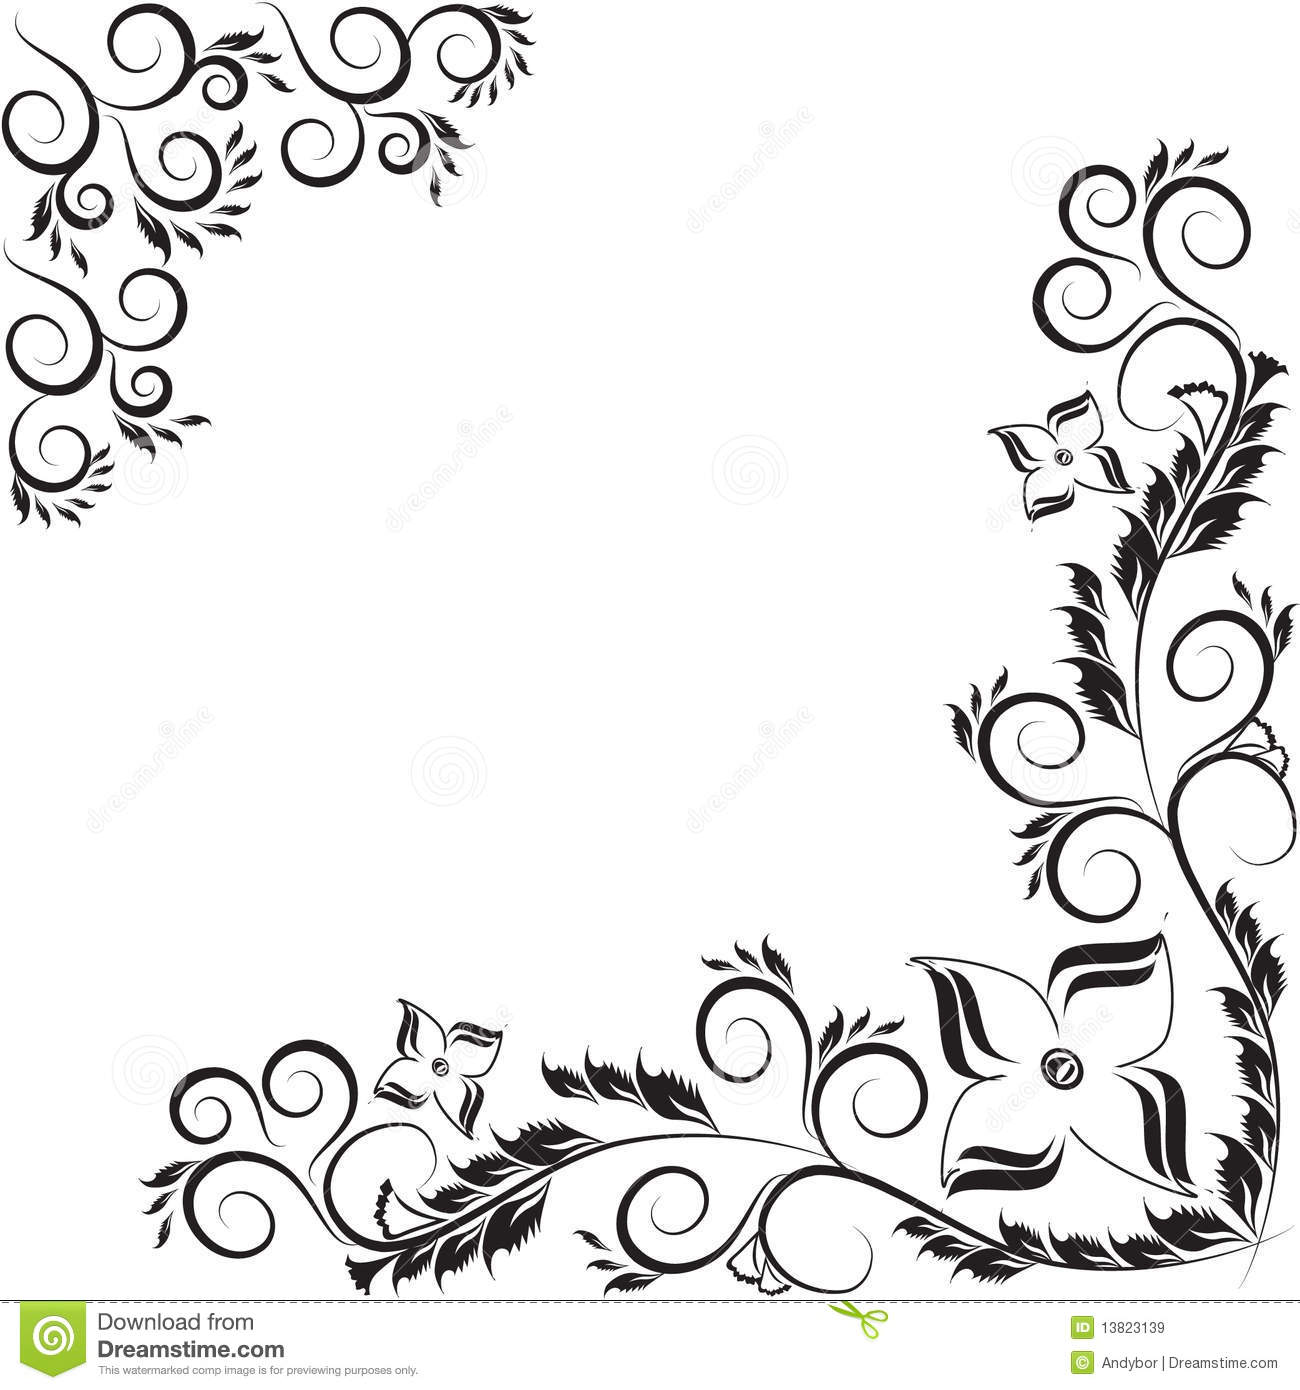 Download Ornate Scroll Floral Design Isolated On White Stock Illustration